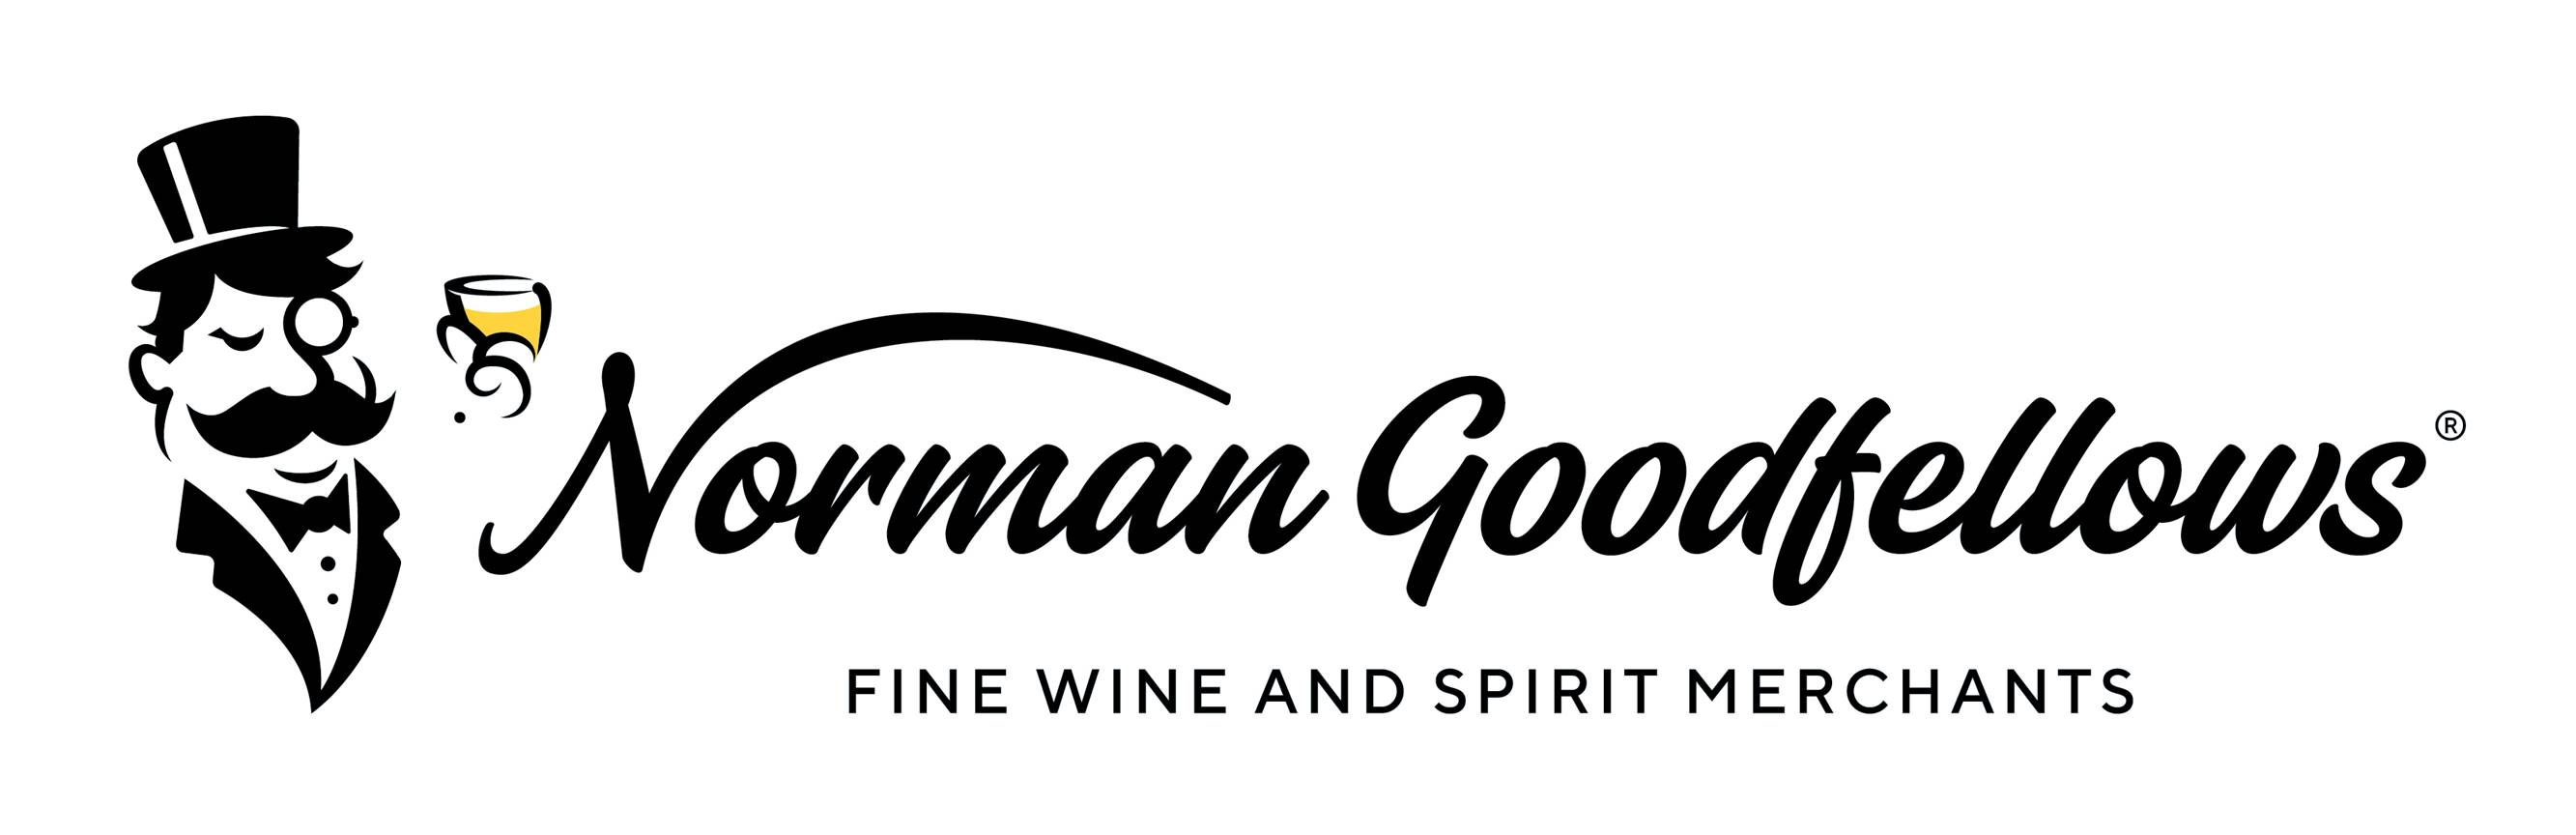 Our Partners - Norman Goodfellows